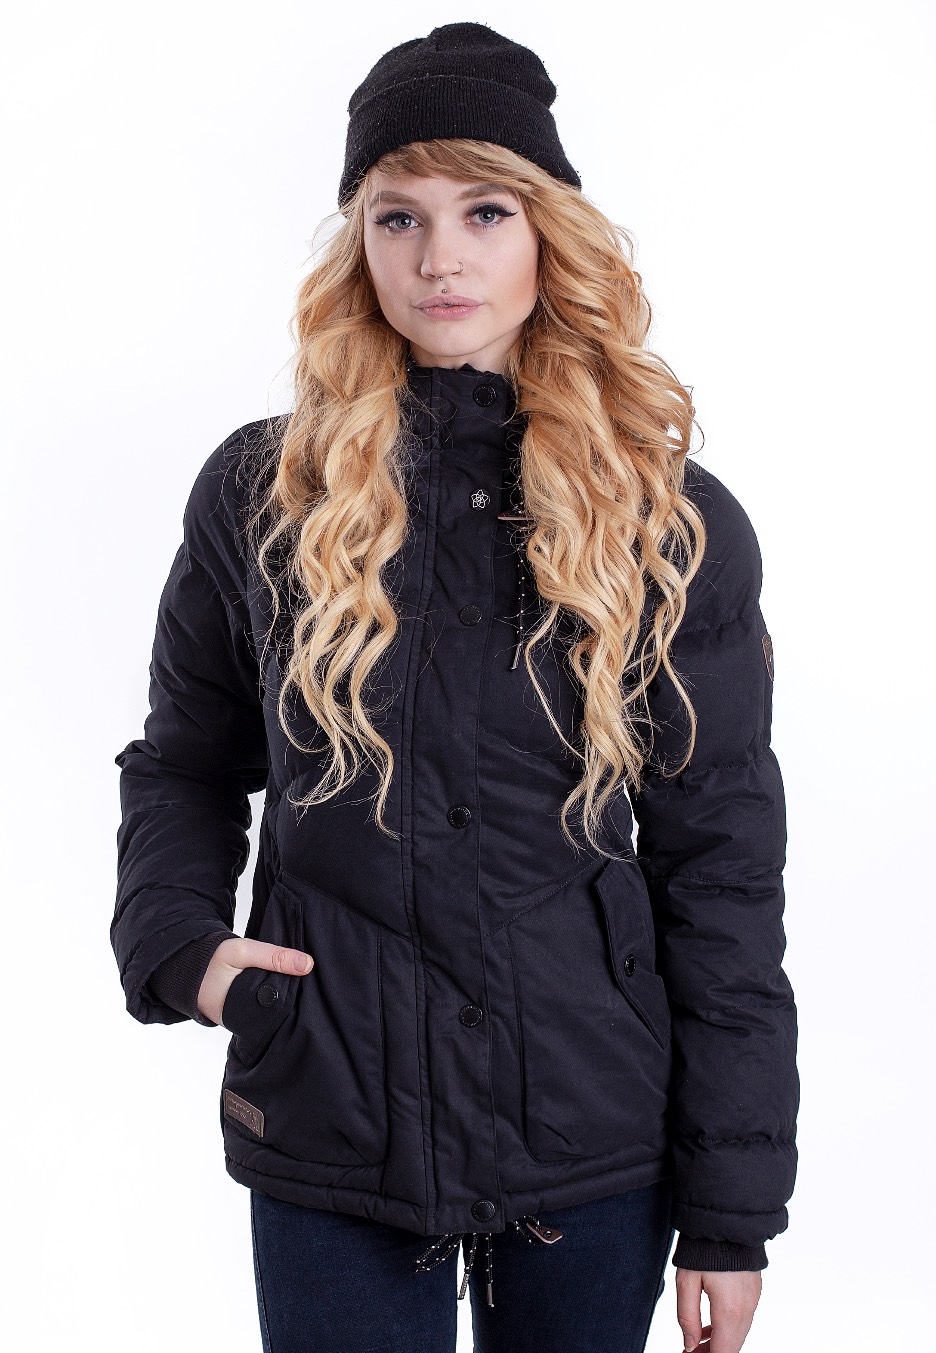 Jacken - Ragwear Felow Black Jacken  - Onlineshop IMPERICON